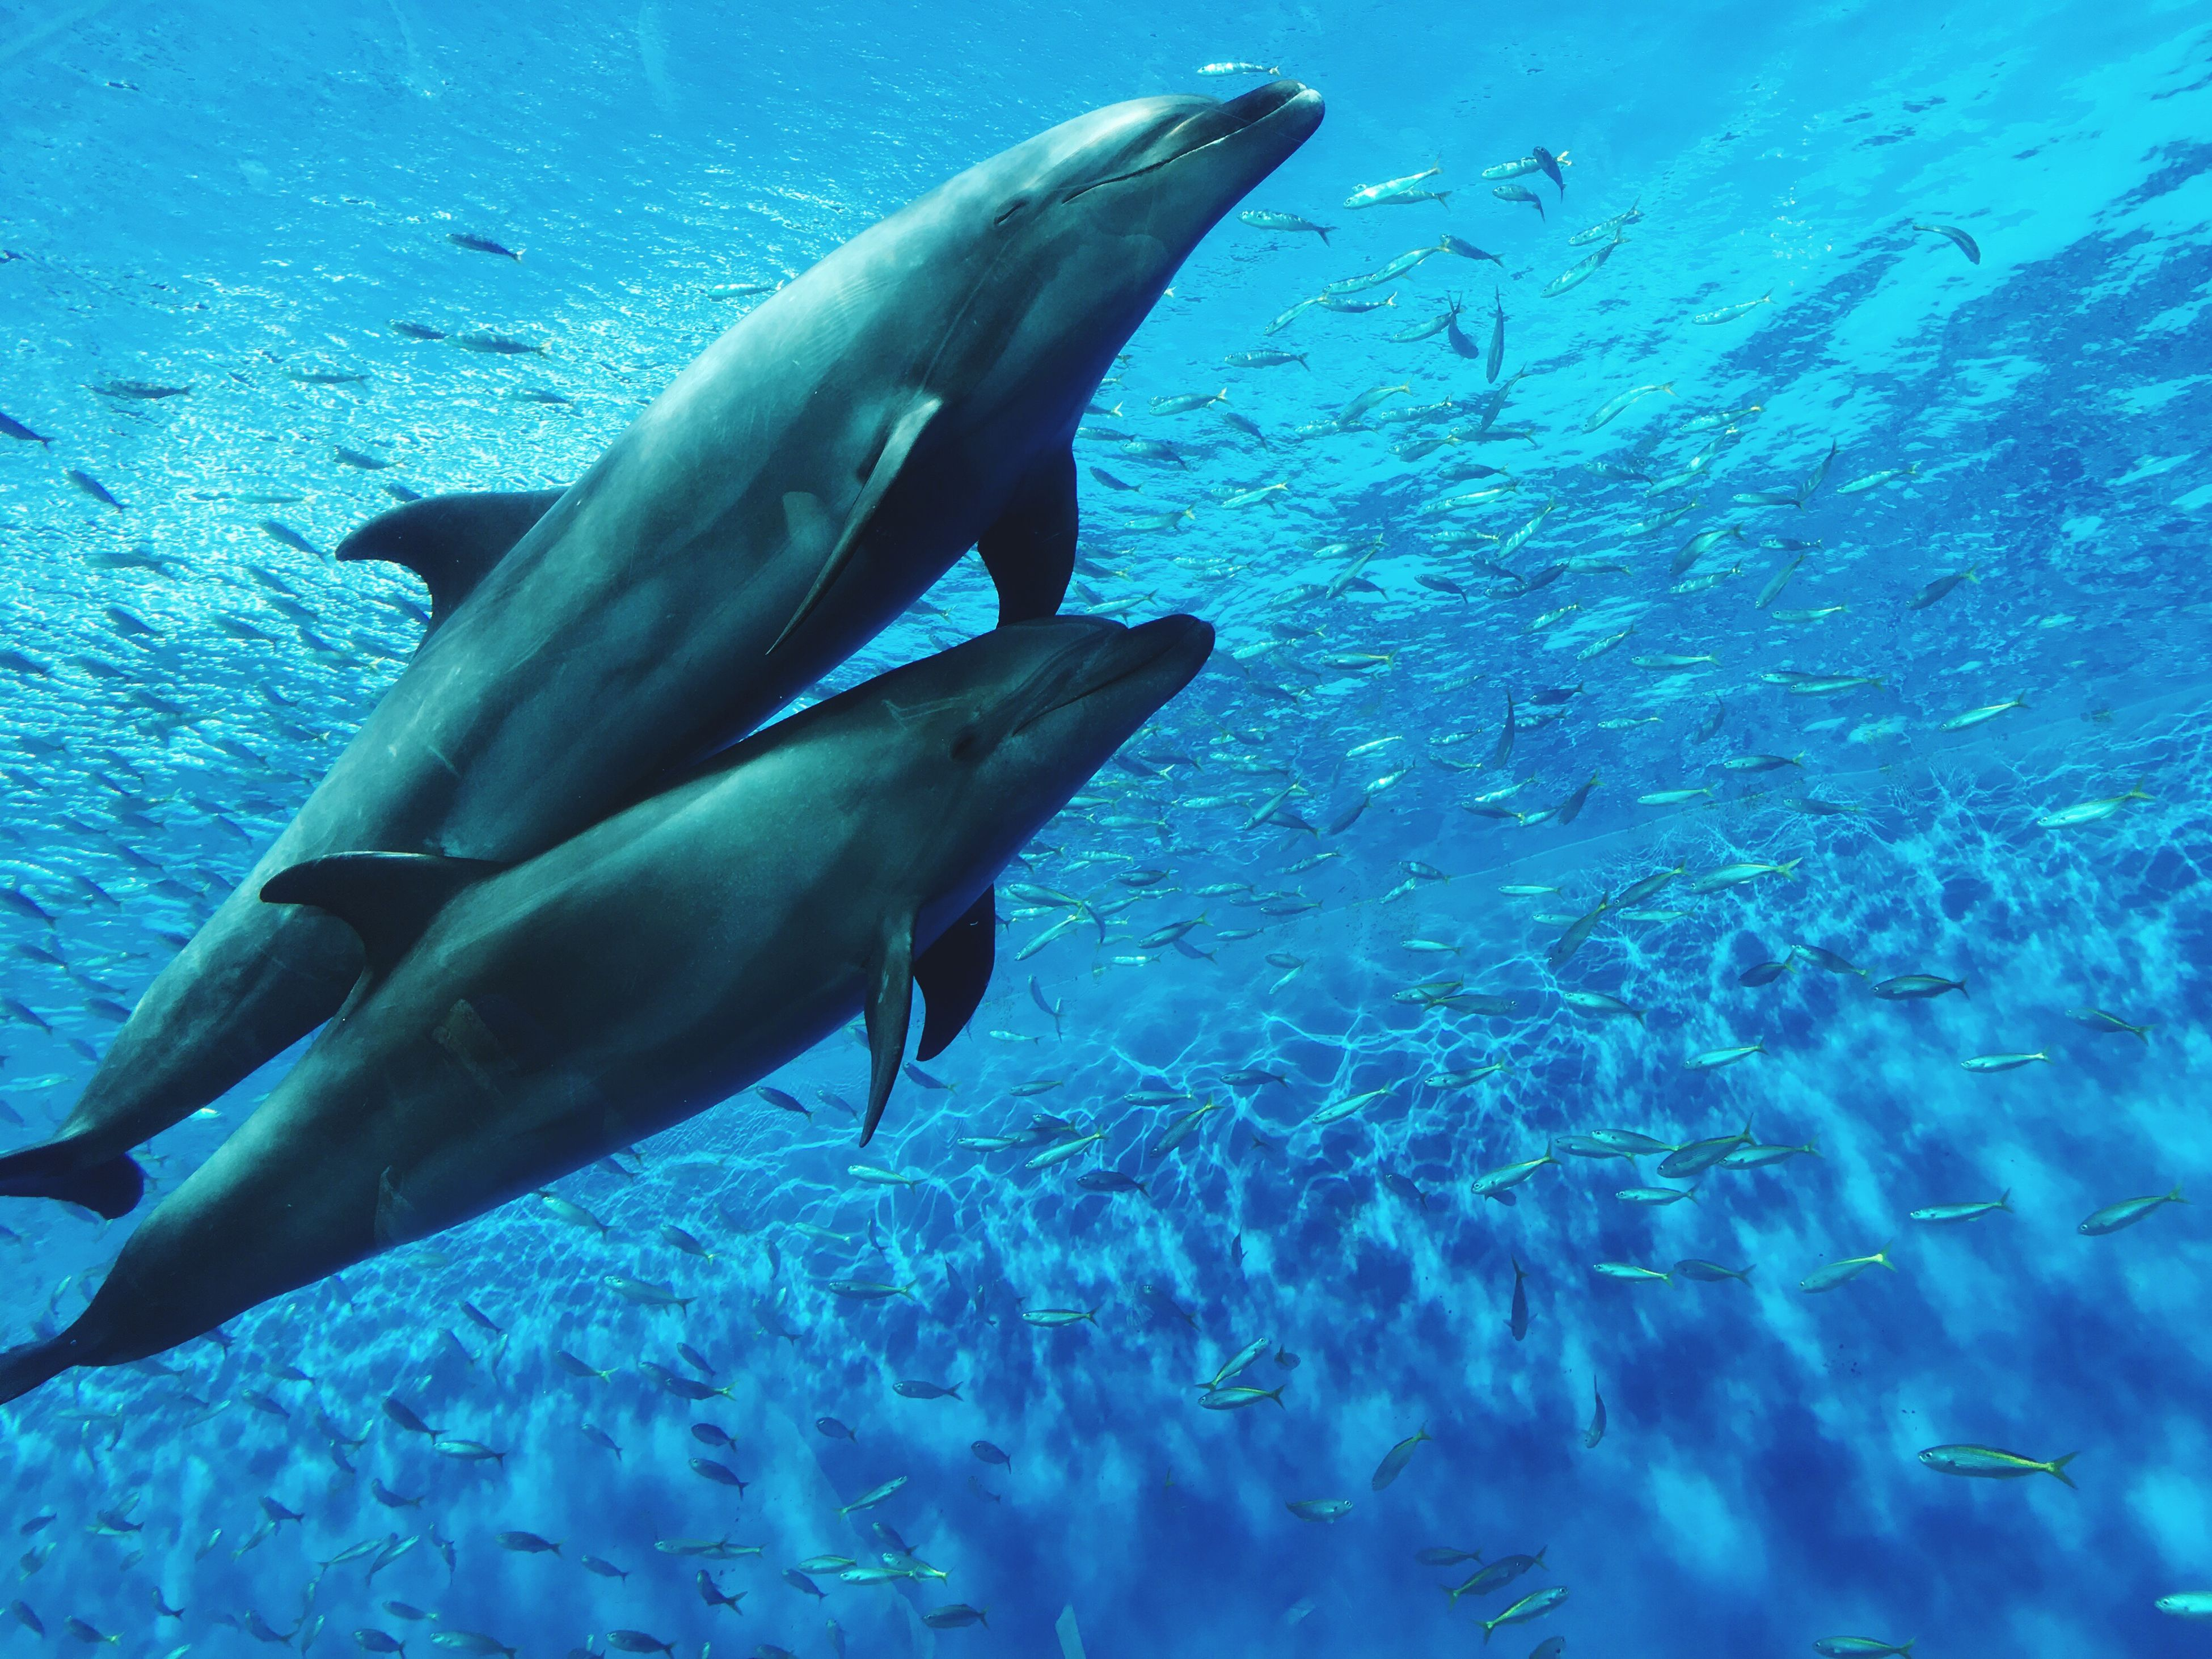 animal themes, water, animals in the wild, sea life, swimming, fish, no people, sea, underwater, animal wildlife, dolphin, blue, nature, aquarium, day, large group of animals, mammal, aquatic mammal, undersea, indoors